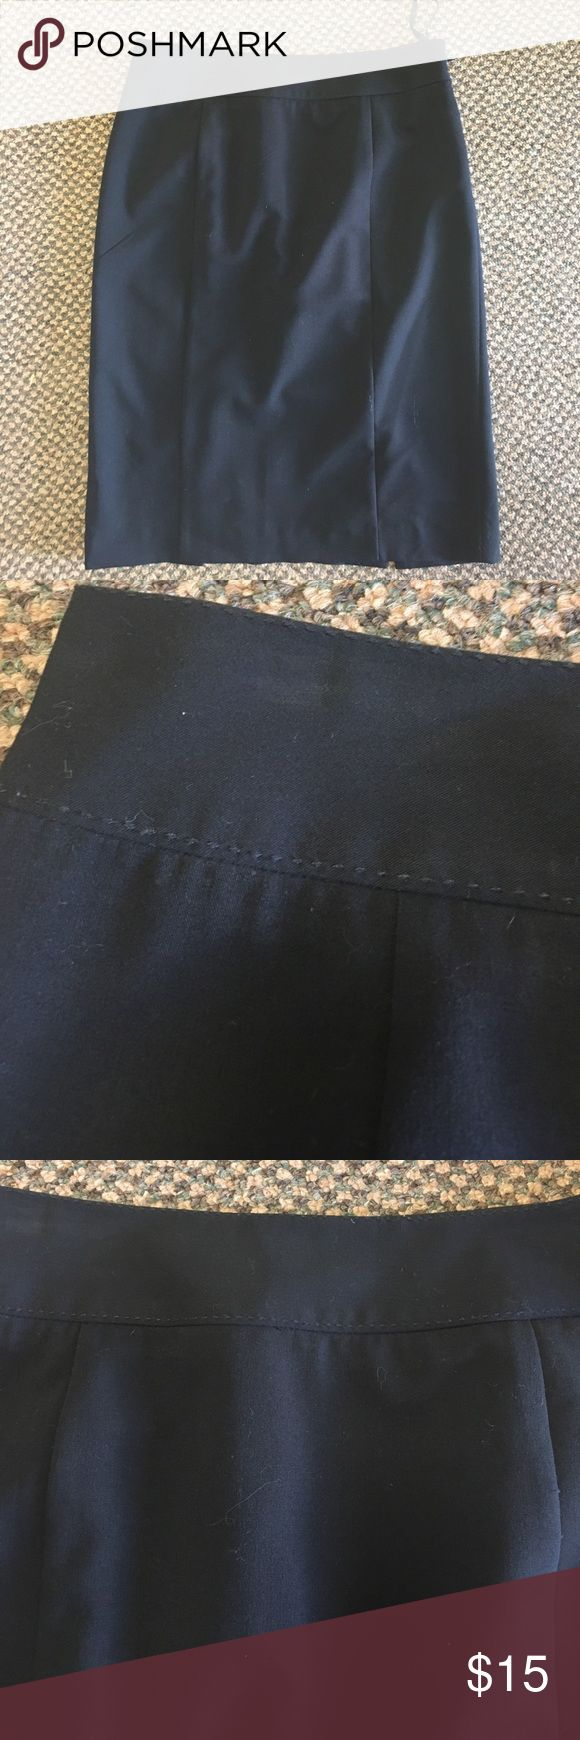 """INC Stretch Black Classic Pencil Skirt size 6 Fully lined. Two slits at back of knees/Sean's. Side zipper. Excellent condition with no damage. Topstitching at waistband. 30"""" waist 23"""" long38"""" hips. INC International Concepts Skirts Pencil"""